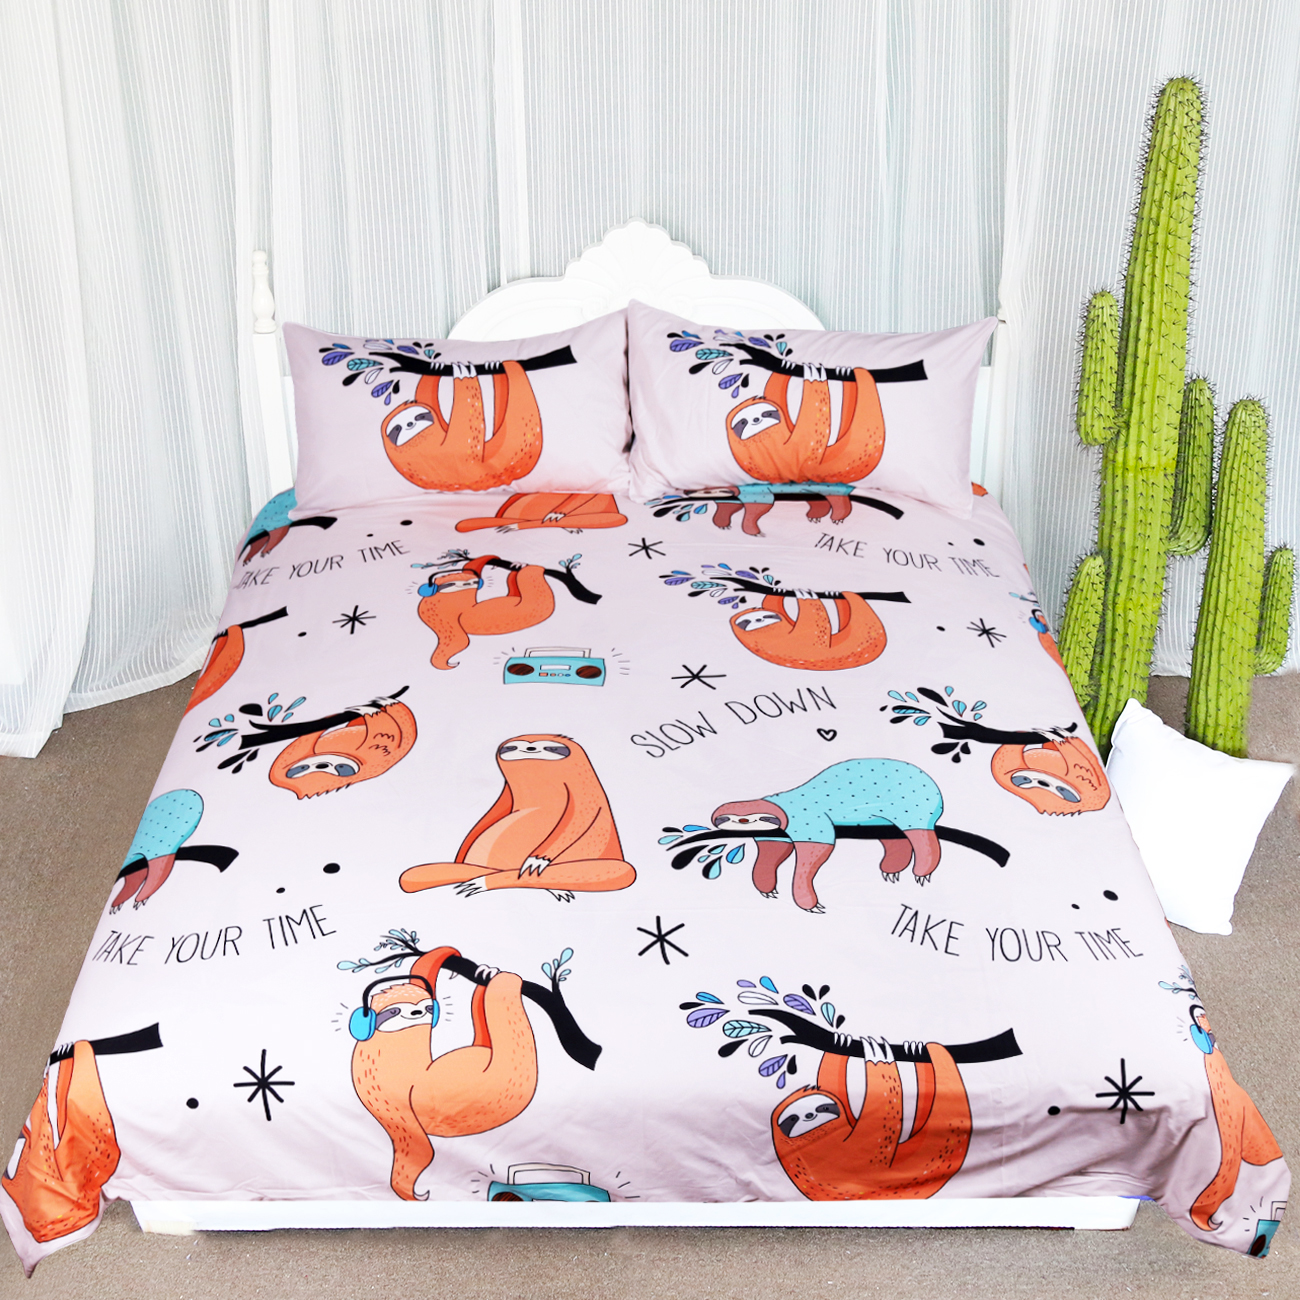 Arightex 3Pcs Baby Sloths Bedding Set Pink Orange Cover Set